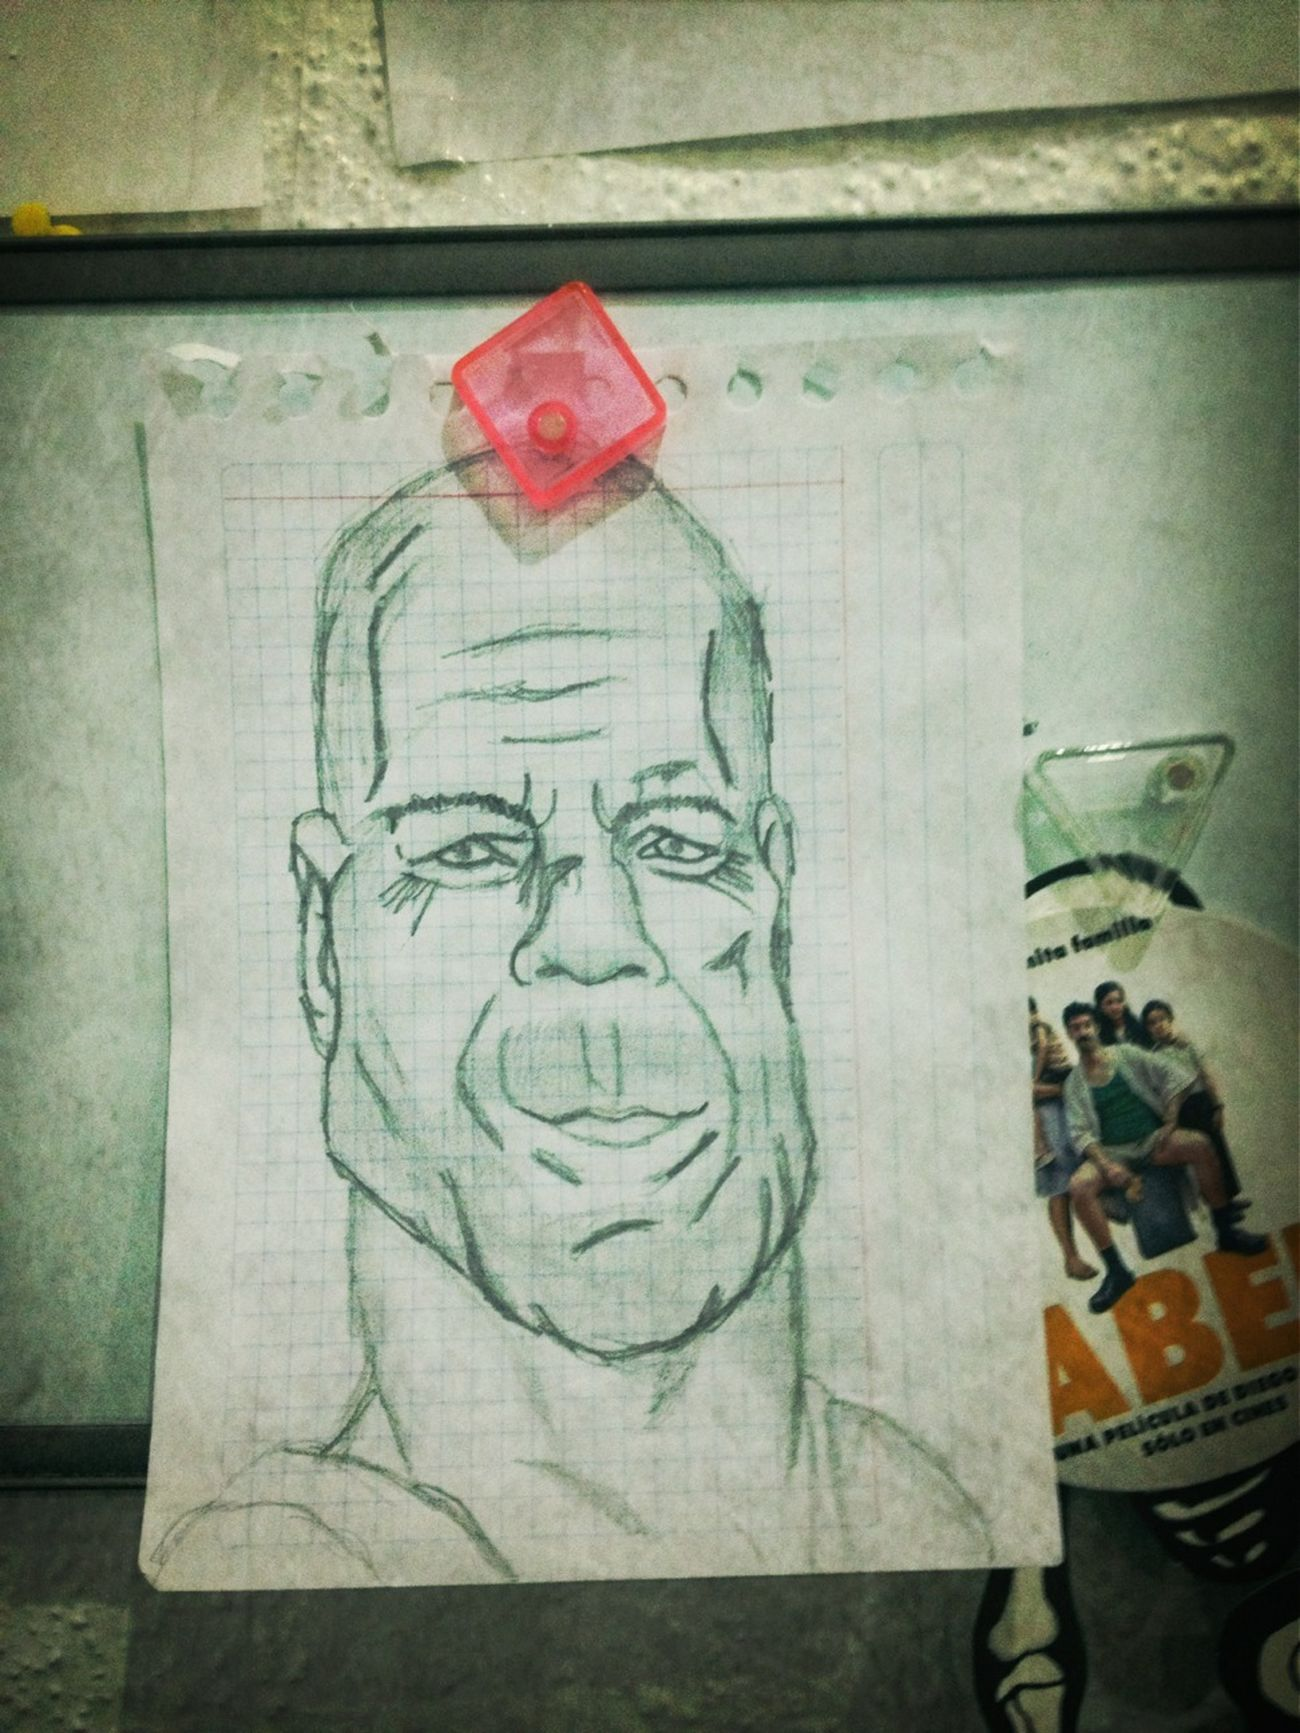 Mr. Bruce Willis